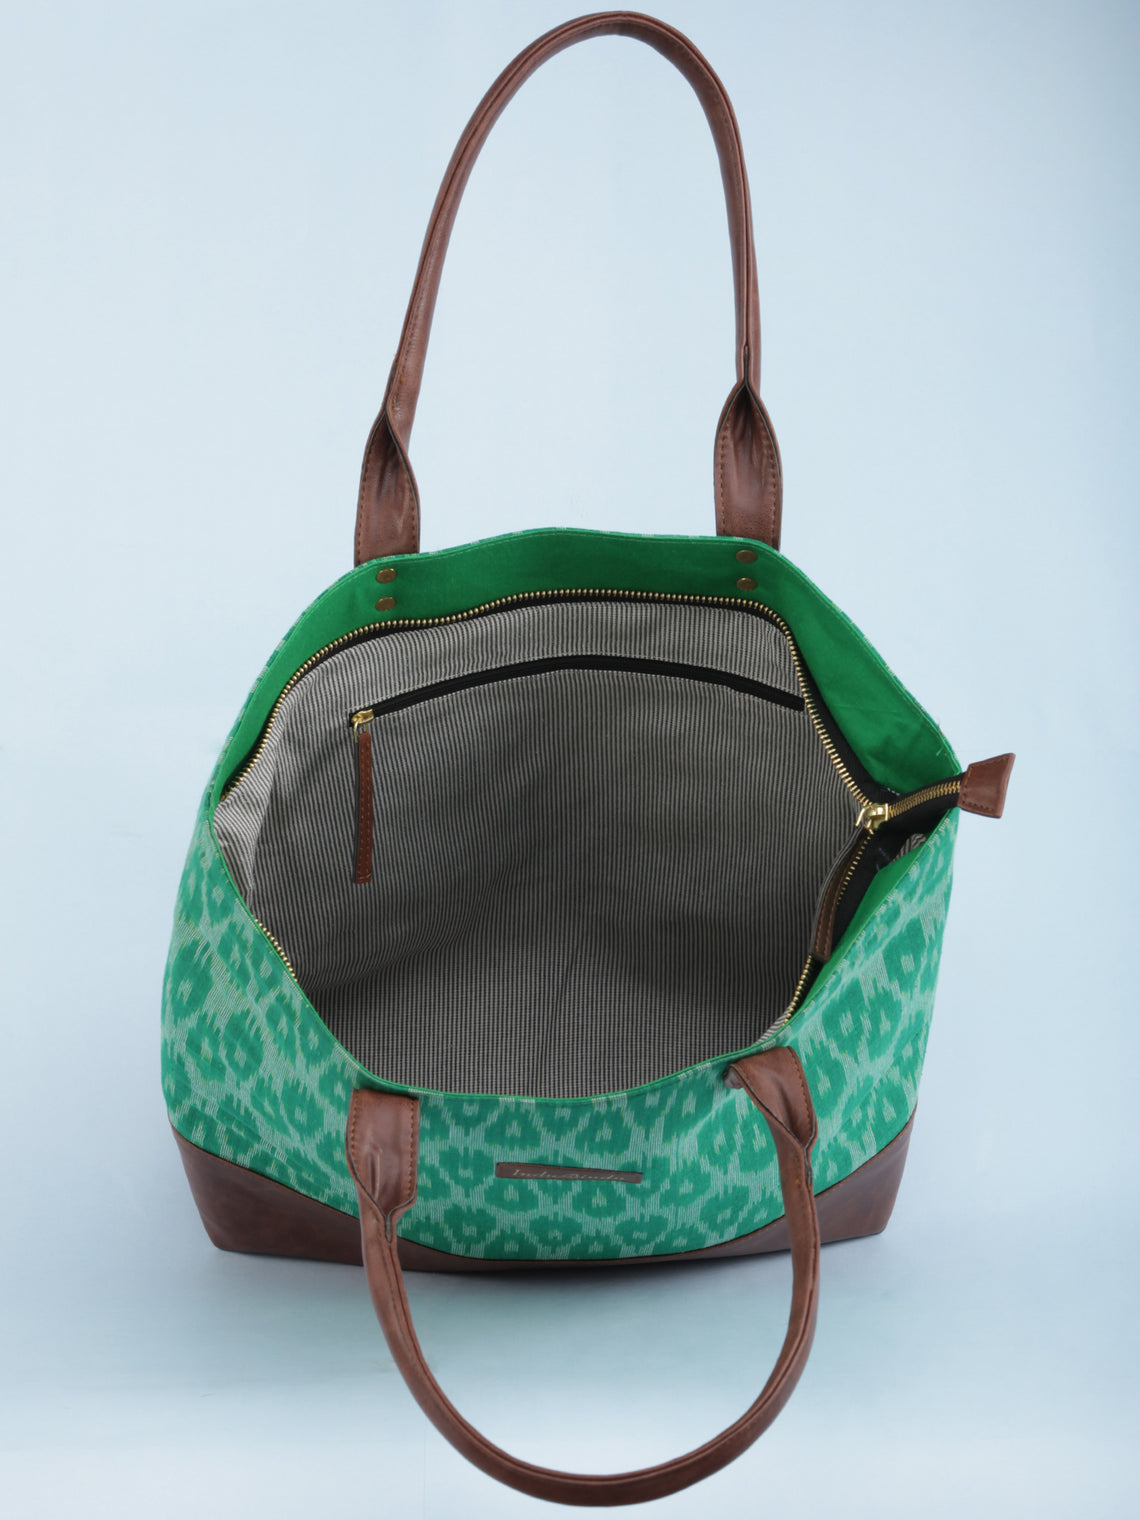 Green OffWhite Ikat & Vegan Leather Tote Bag - B1008